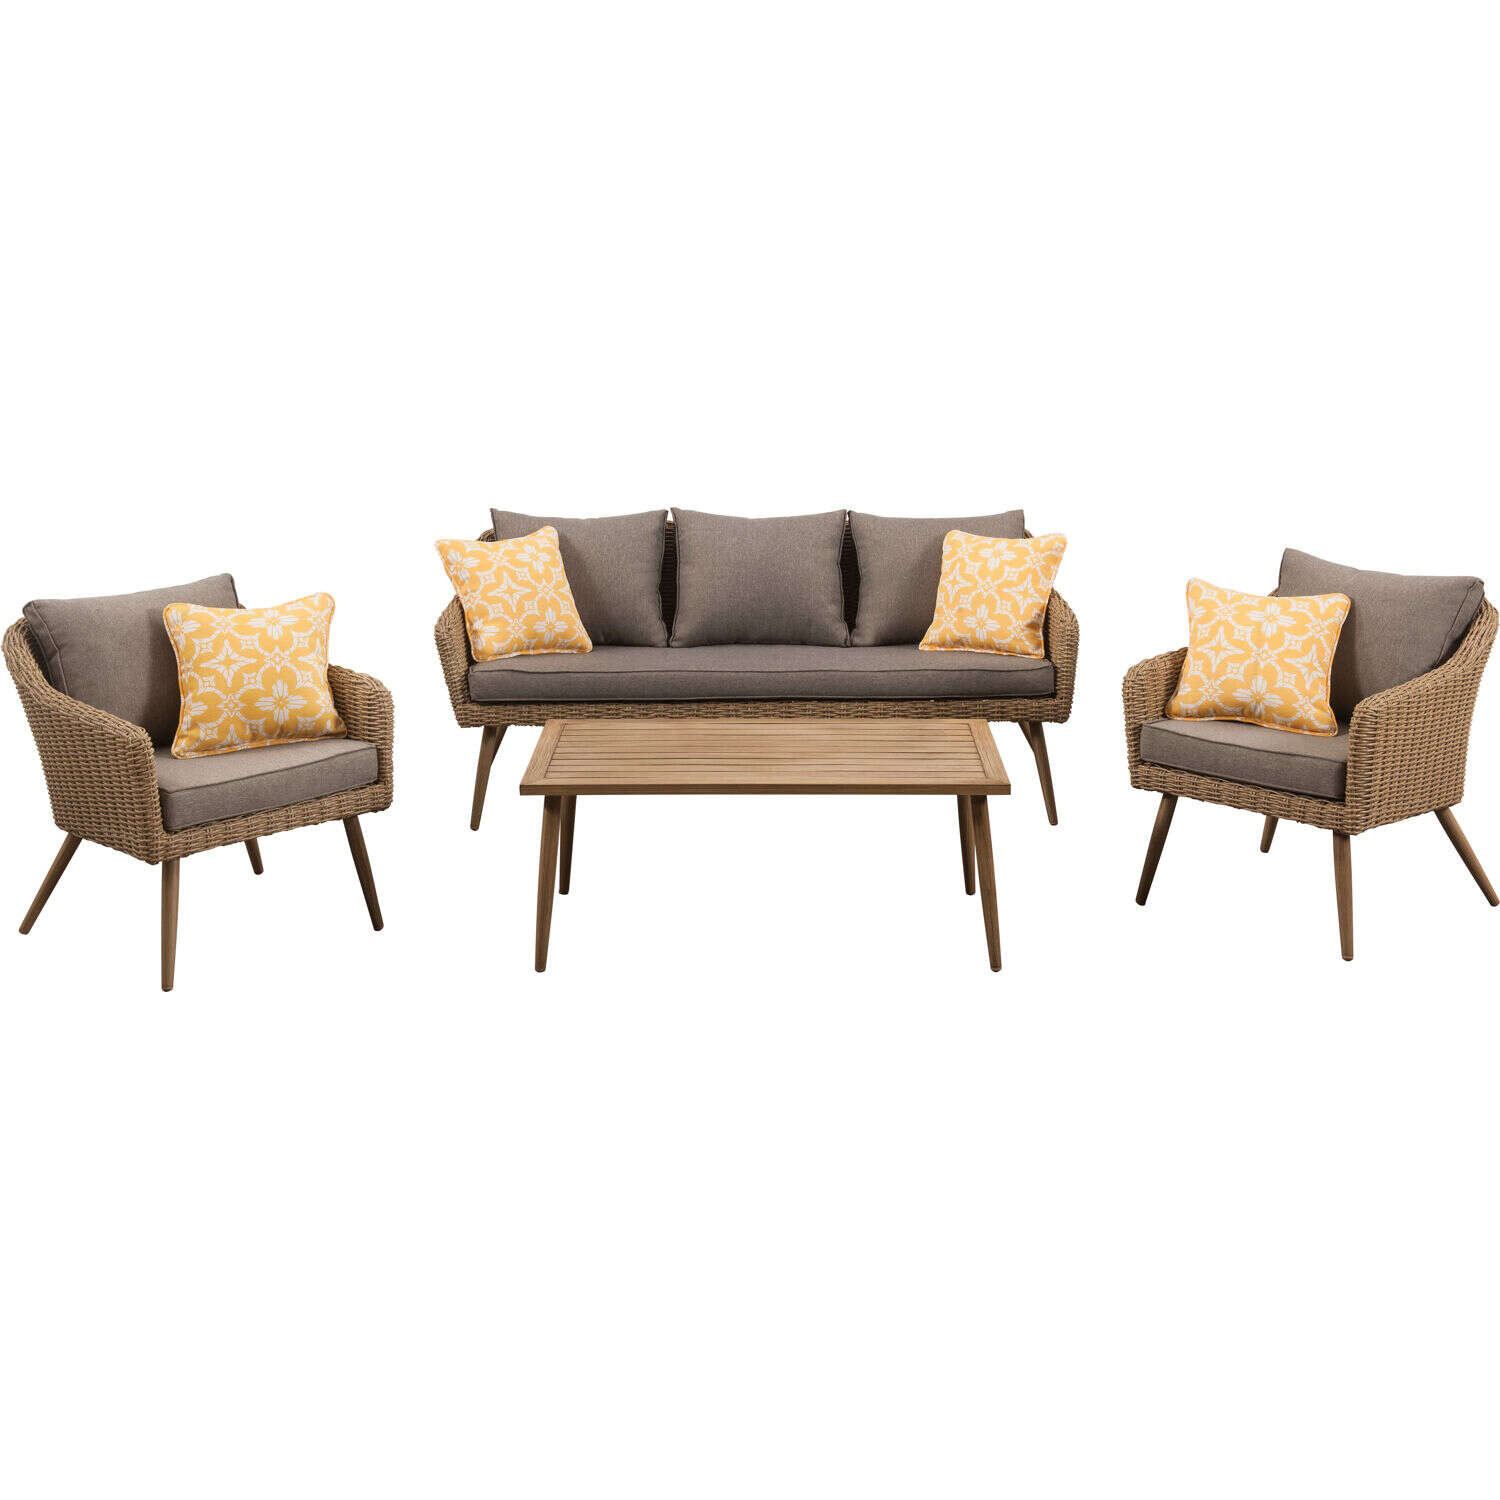 Mod  Jaden  4 pc. Brown  Aluminum Frame Seating Set  Gray